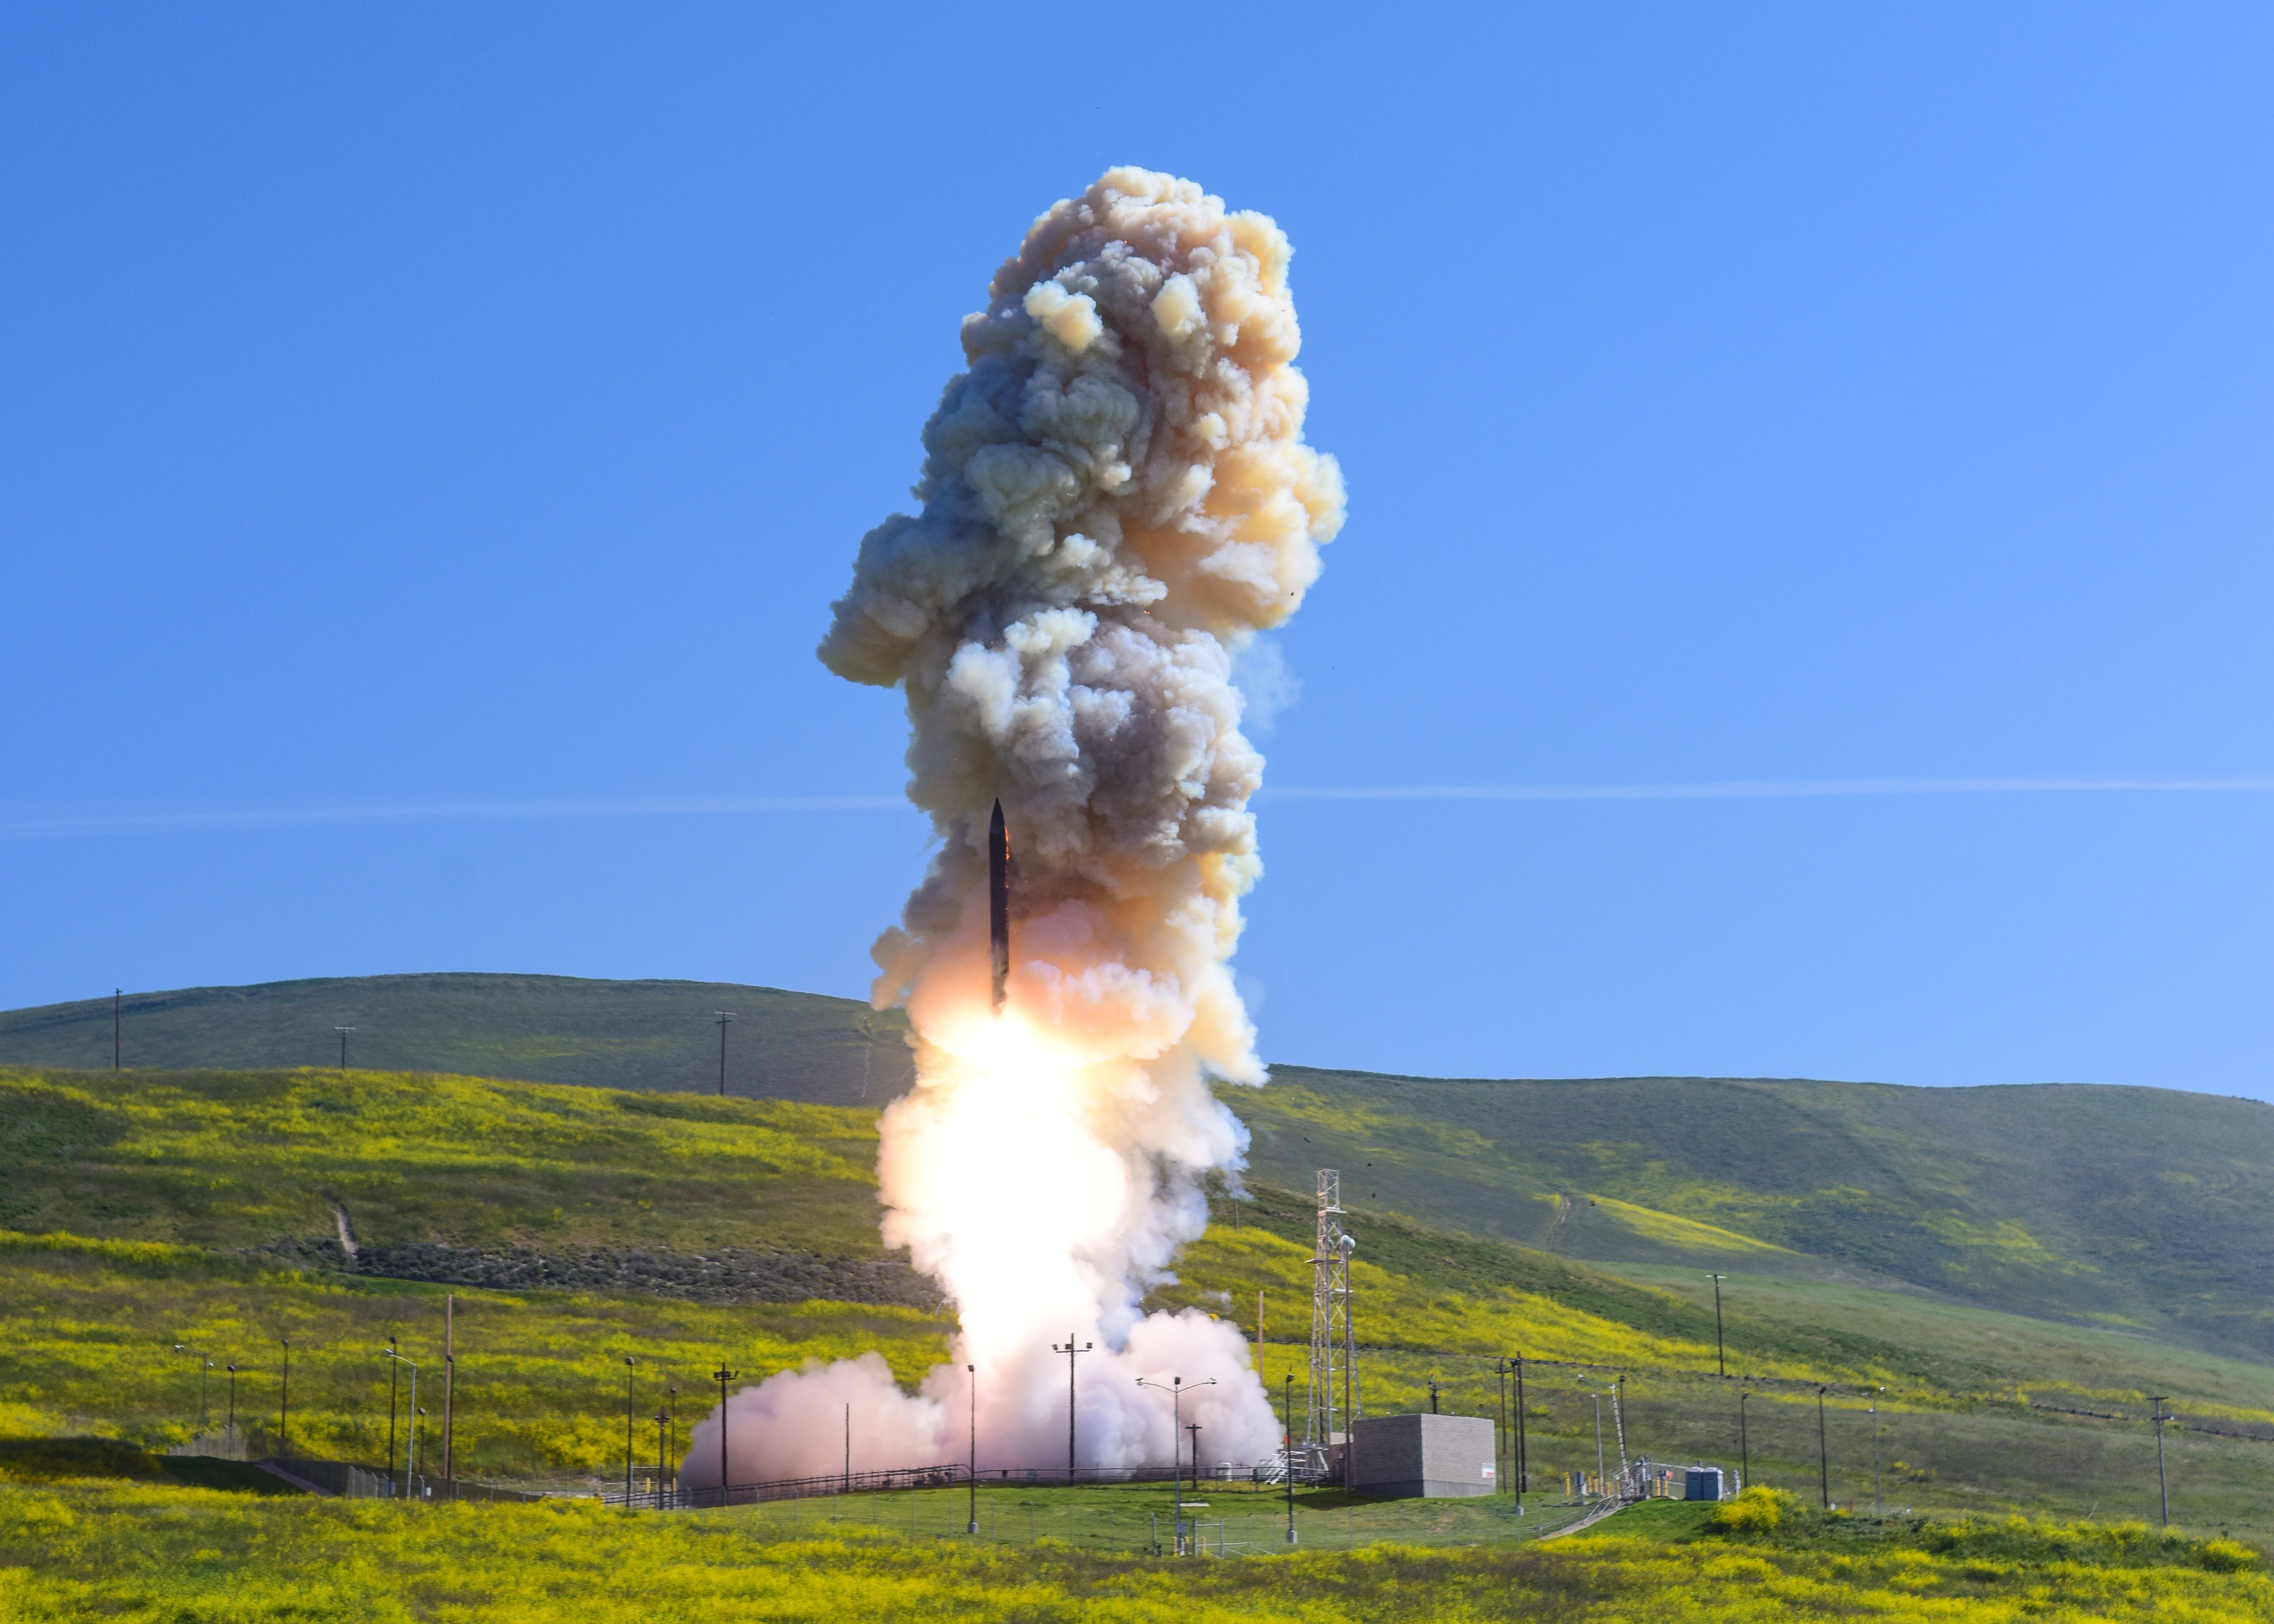 Pentagon Claims Success in New Missile Defense Test